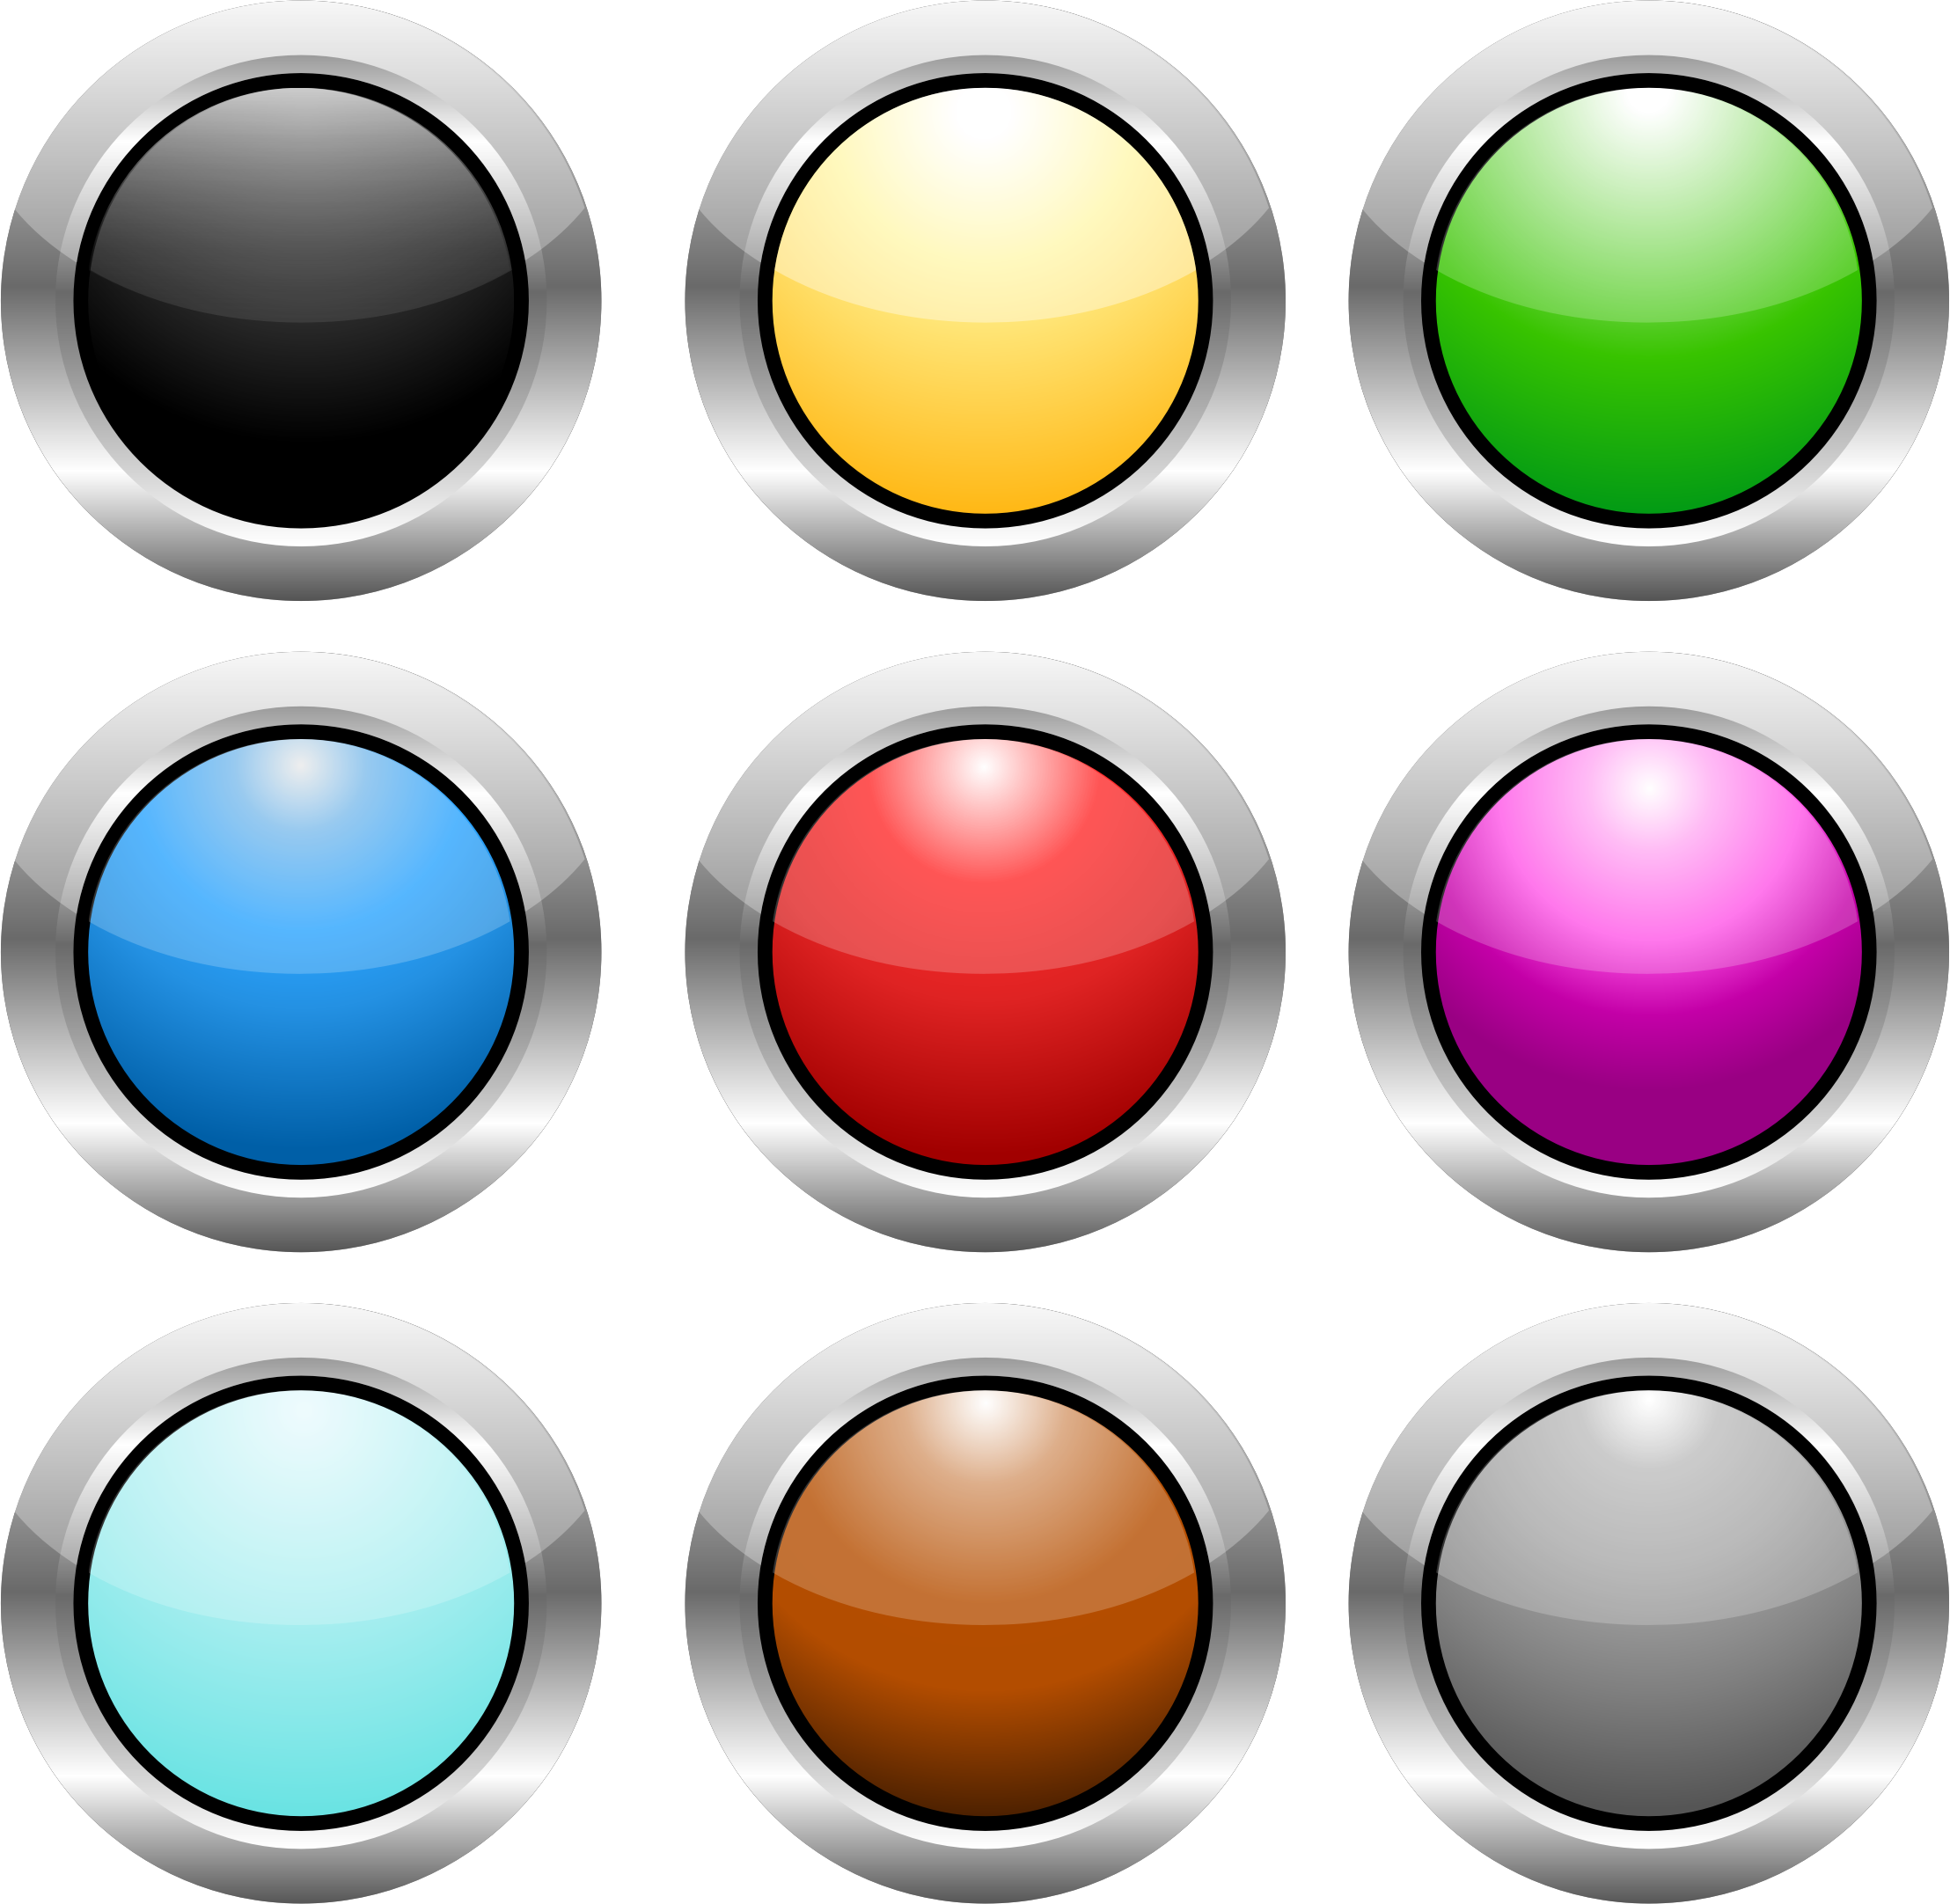 Buttons png. Circle steel icons free